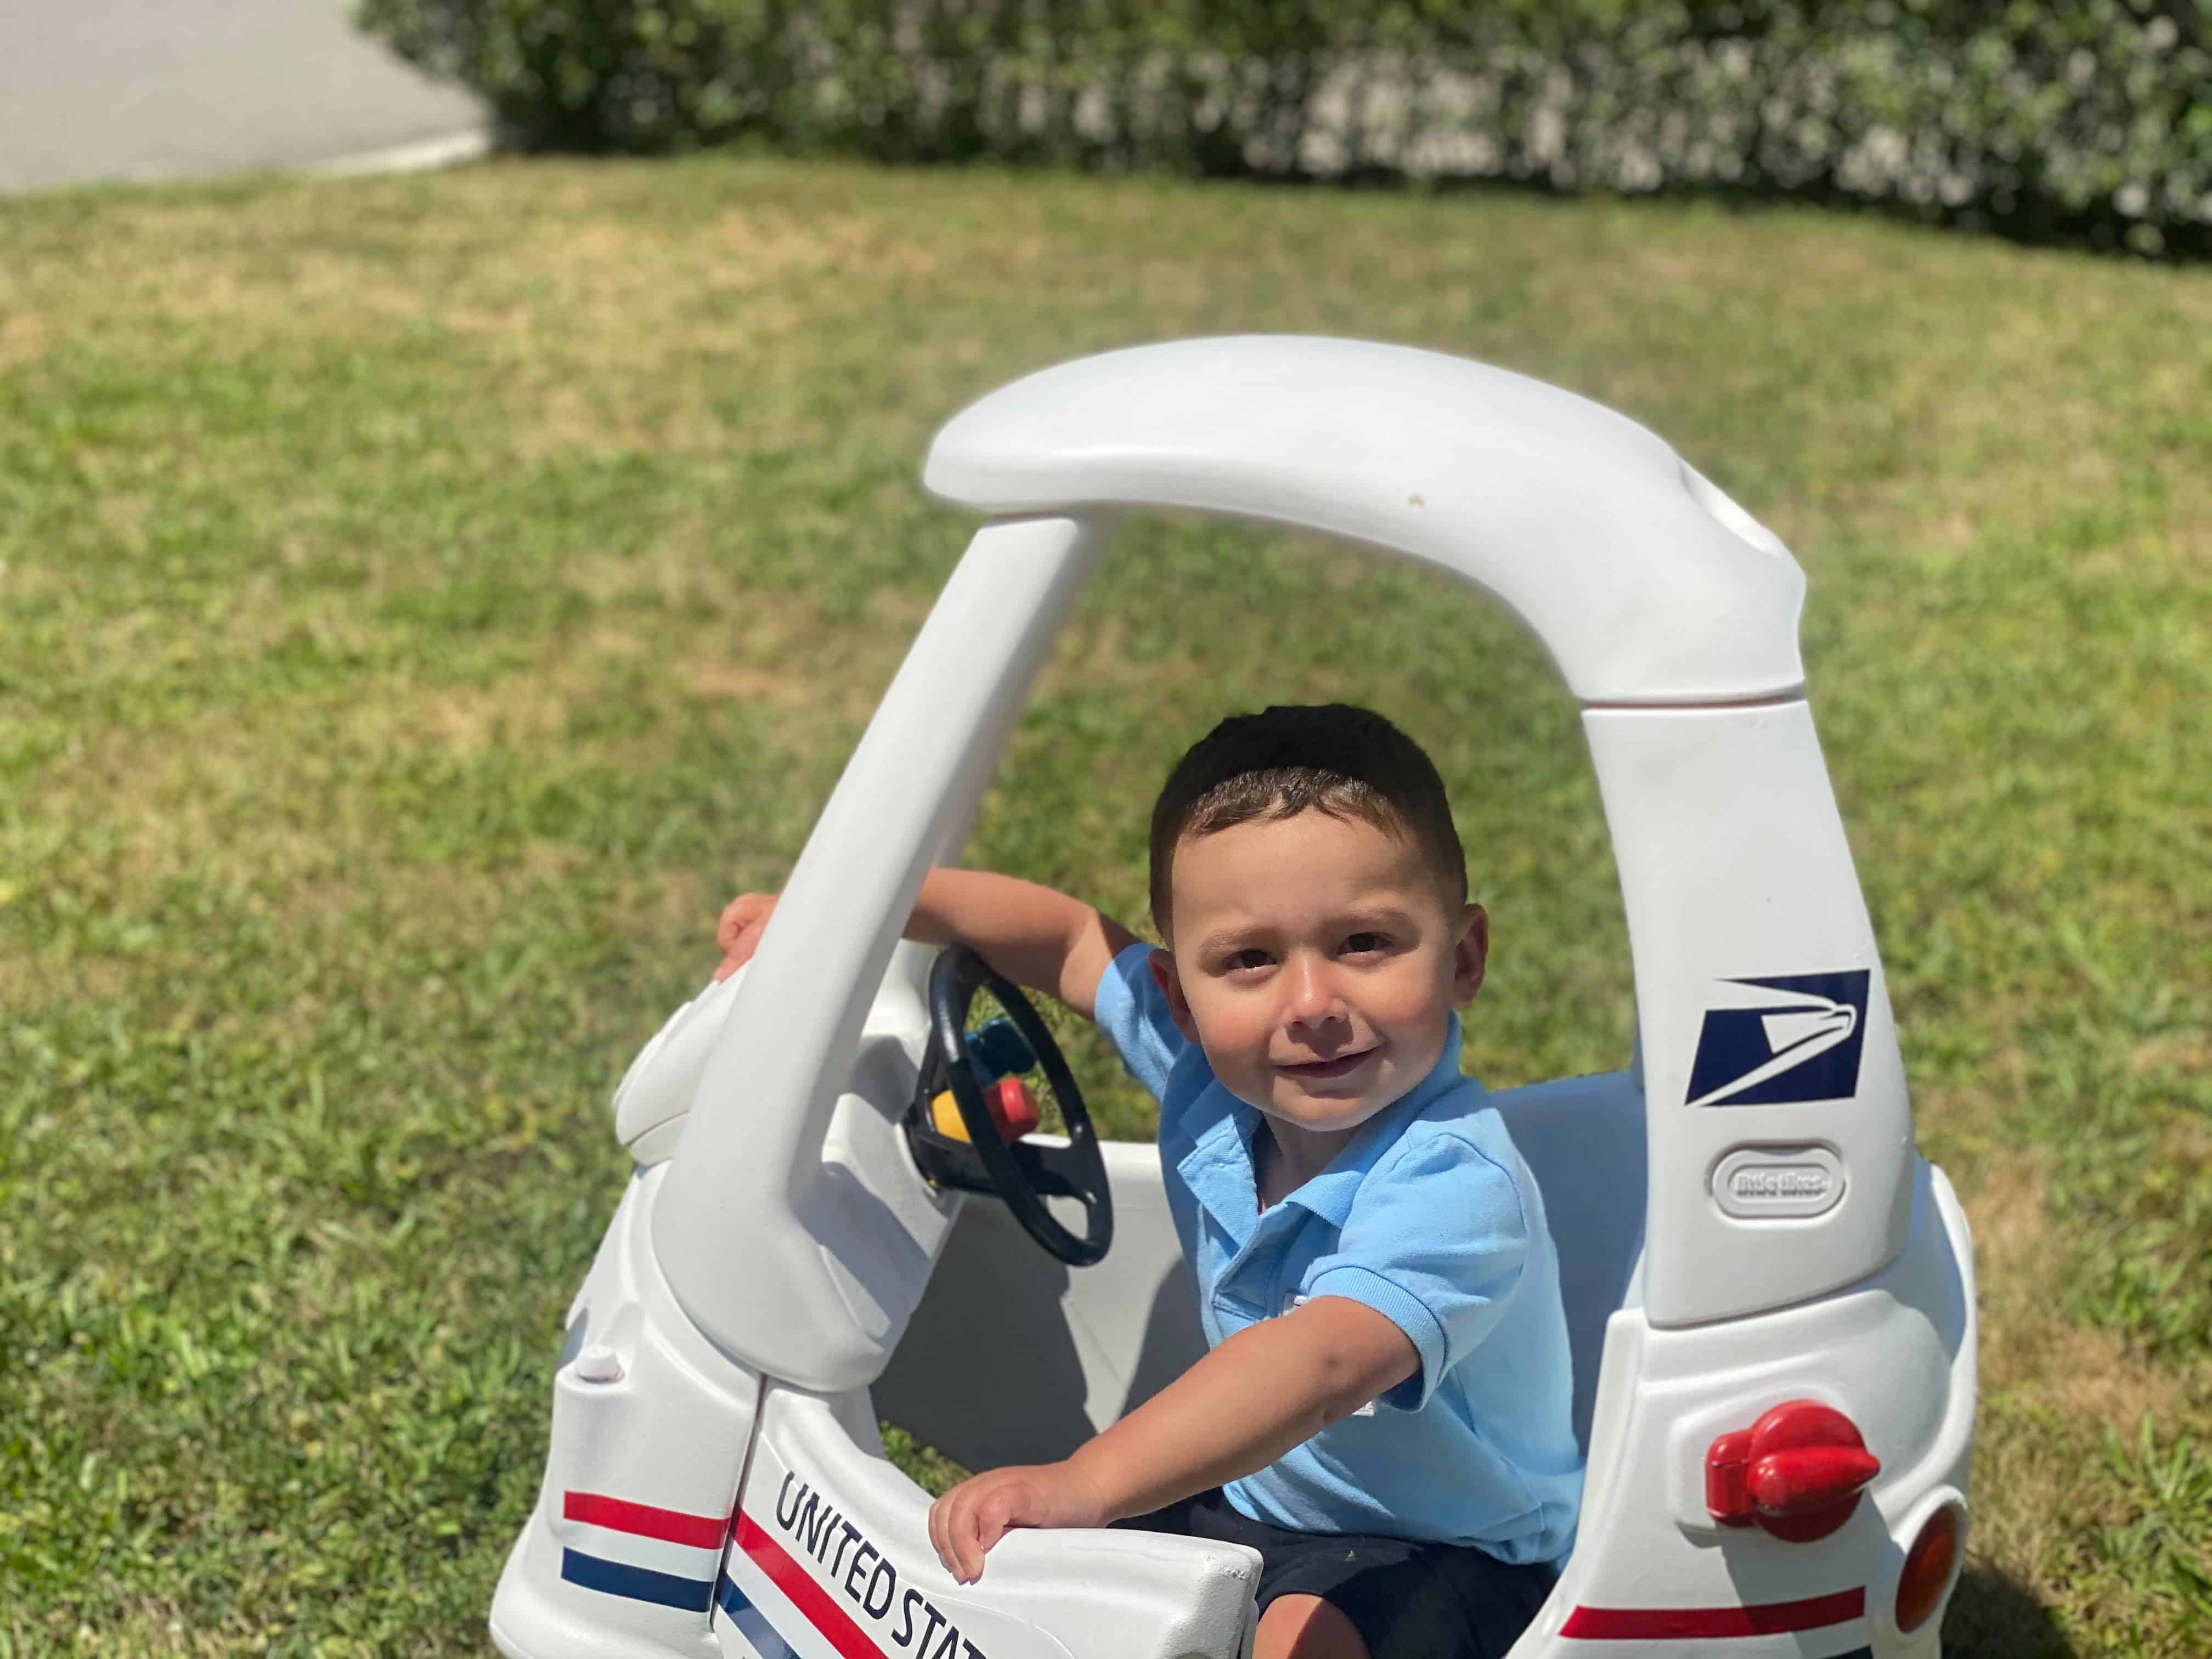 USPS Mail Truck Cozy Coupe Makeover